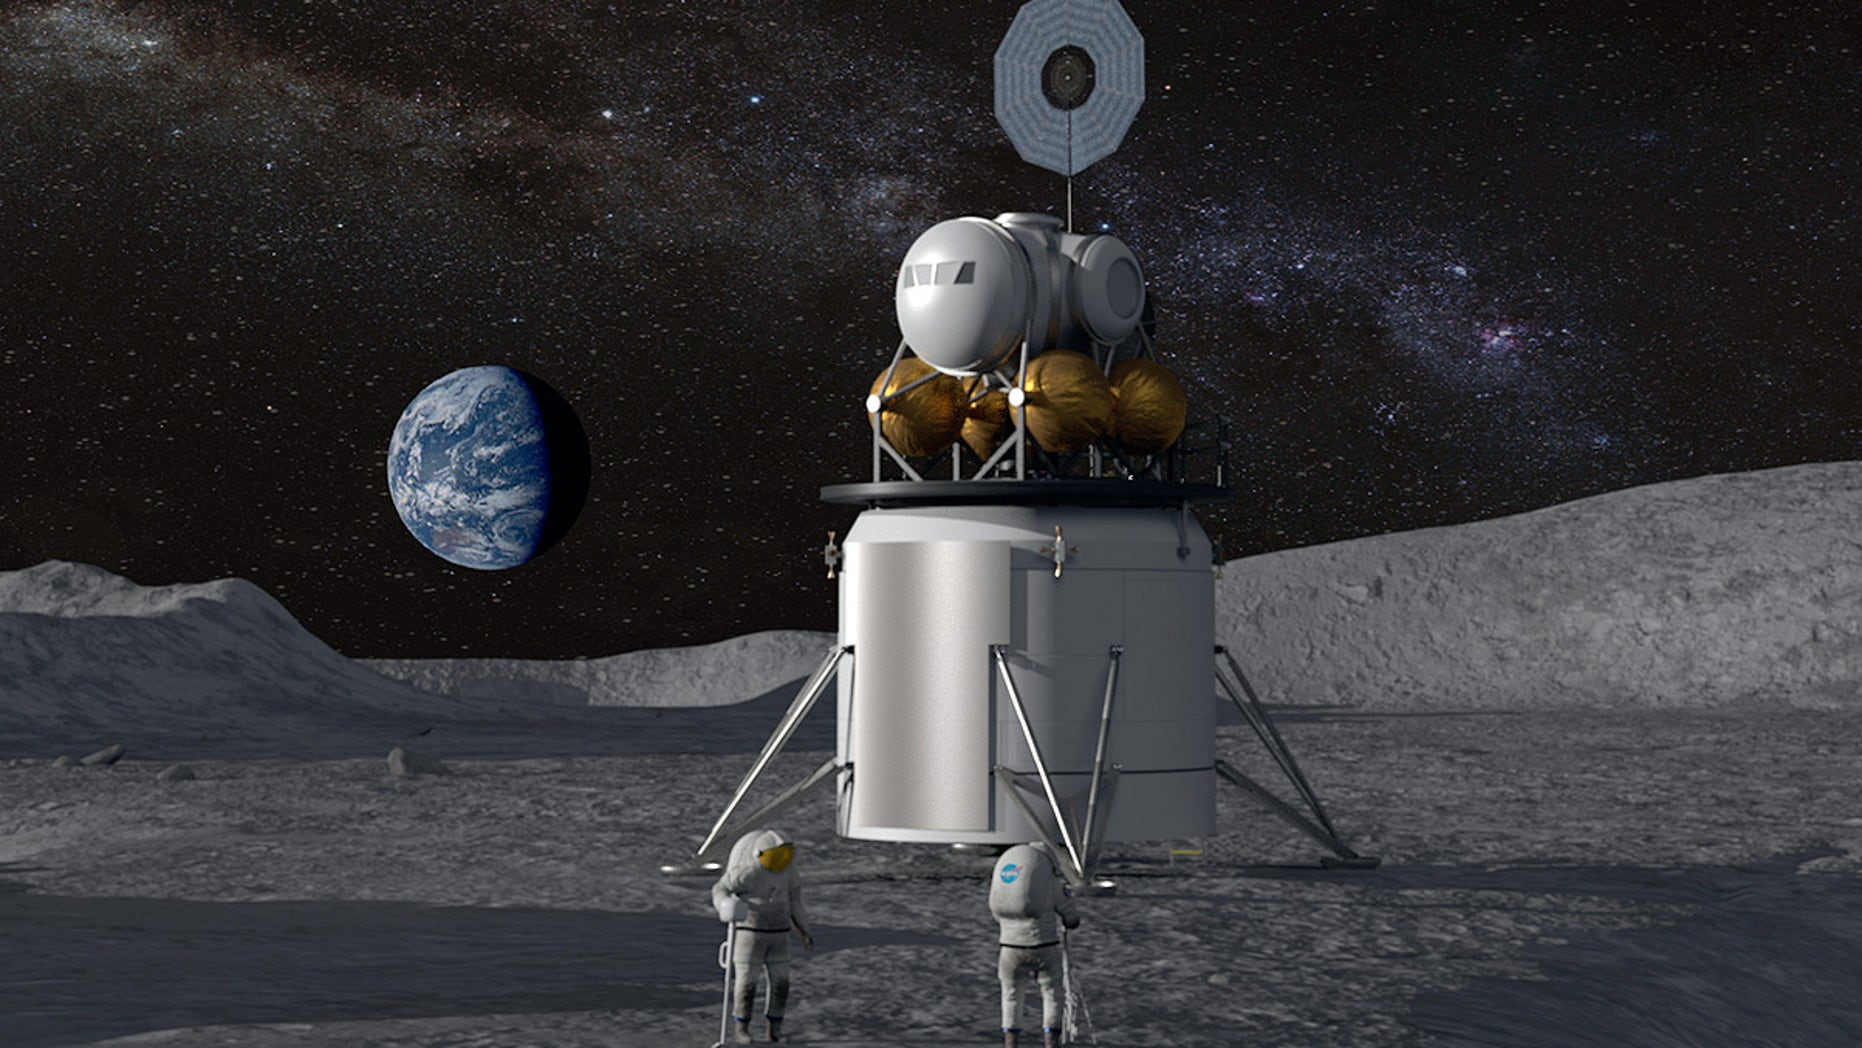 Artist's concept of a future moon landing carried out under NASA's newly named Artemis program. The space agency is working to return men and send the first women to the lunar surface by 2024, as has been directed by the White House.